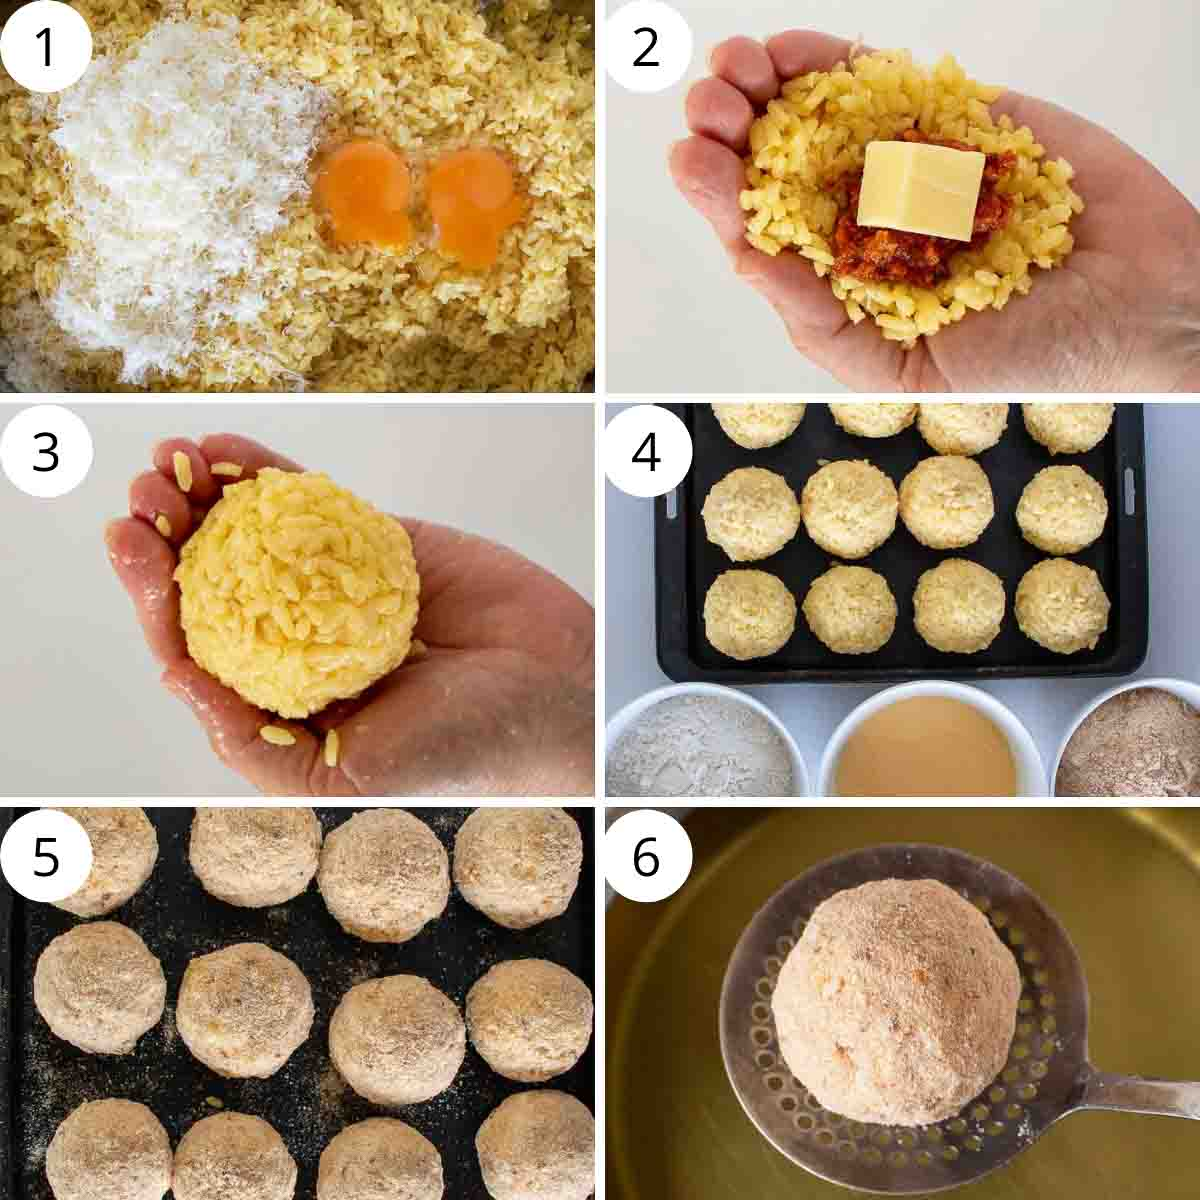 Six image collage. Image 1 - yellow rice with parmesan cheese and eggs. Image 2 - hand with yellow rice, tomato sauce and cube of cheese. Image 3 - yellow rice ball cupped in palm of hand. Image 4 - yellow rice balls on black tray with bowls of flour, egg and breadcrumbs. Image 5 - breadcrumb coated balls. Image 6 - breadcrumb coated ball on slotted stainless steel spoon